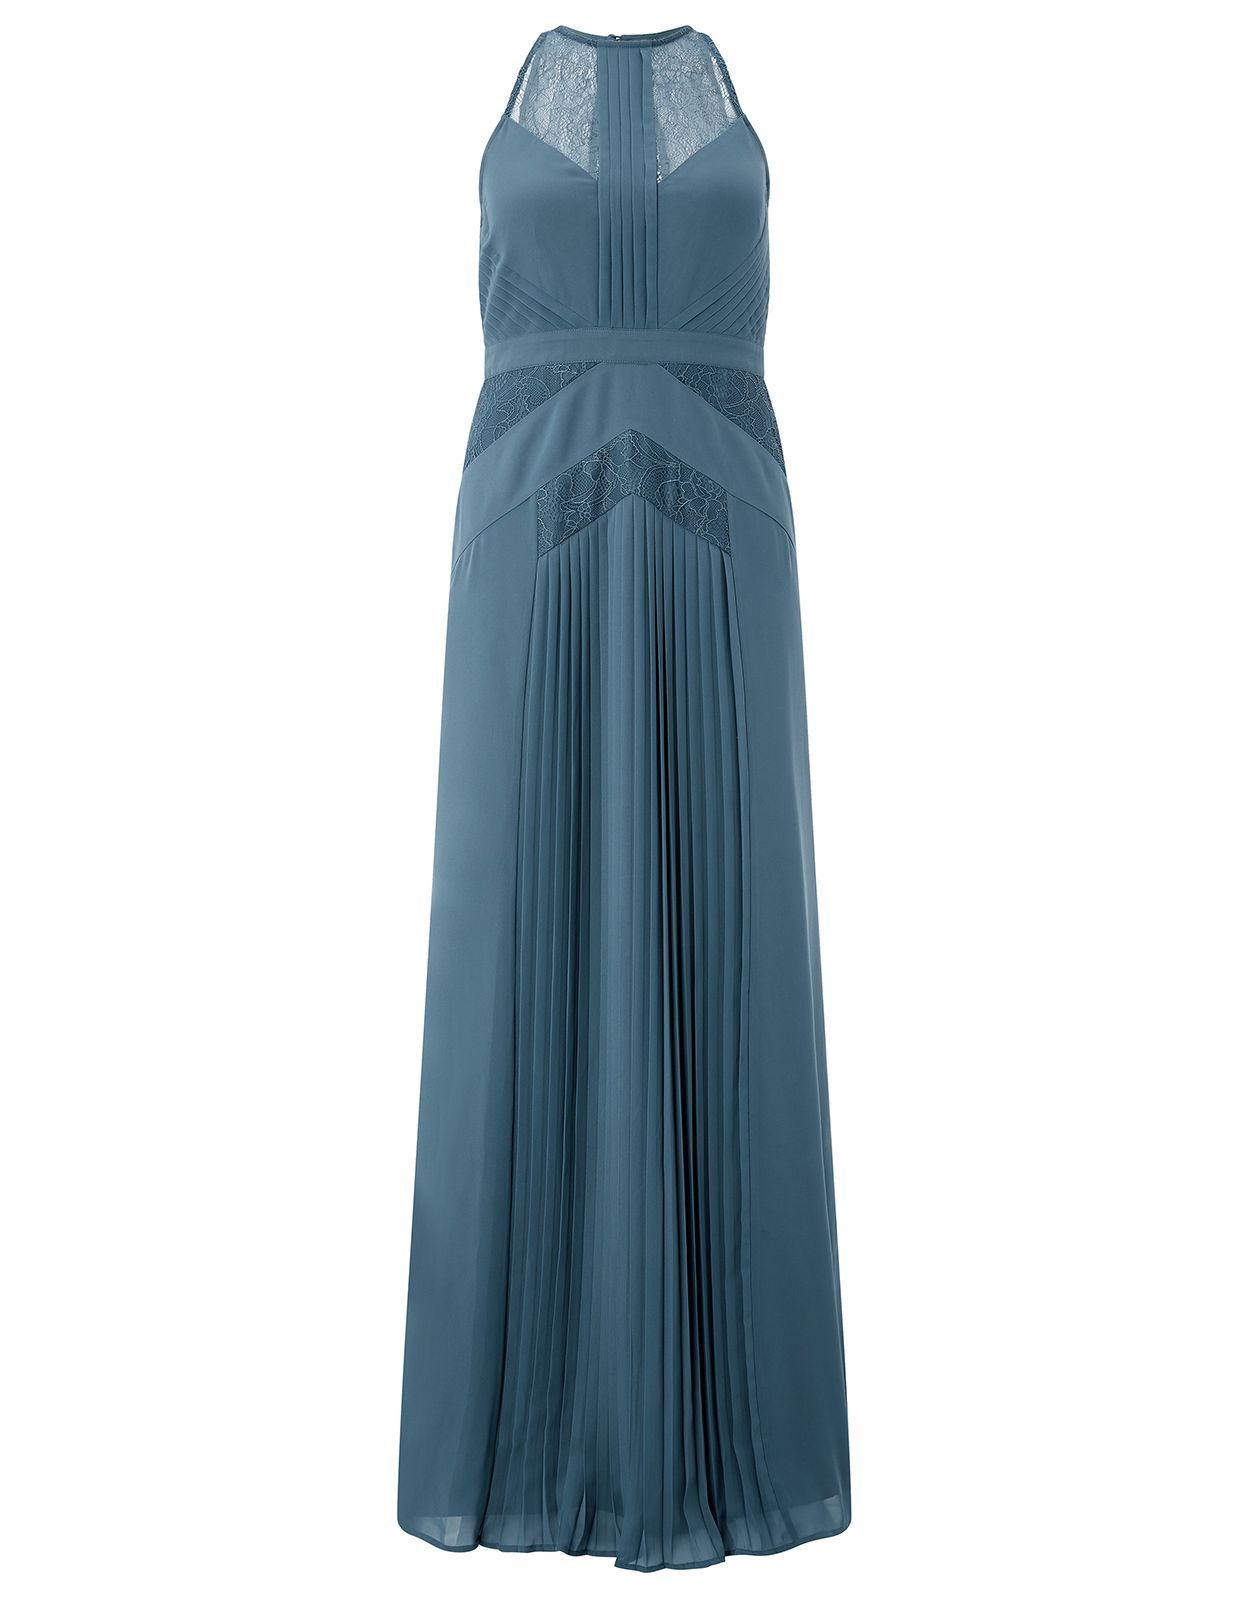 Dorable House Of Fraser Wedding Outfits Embellishment - All Wedding ...